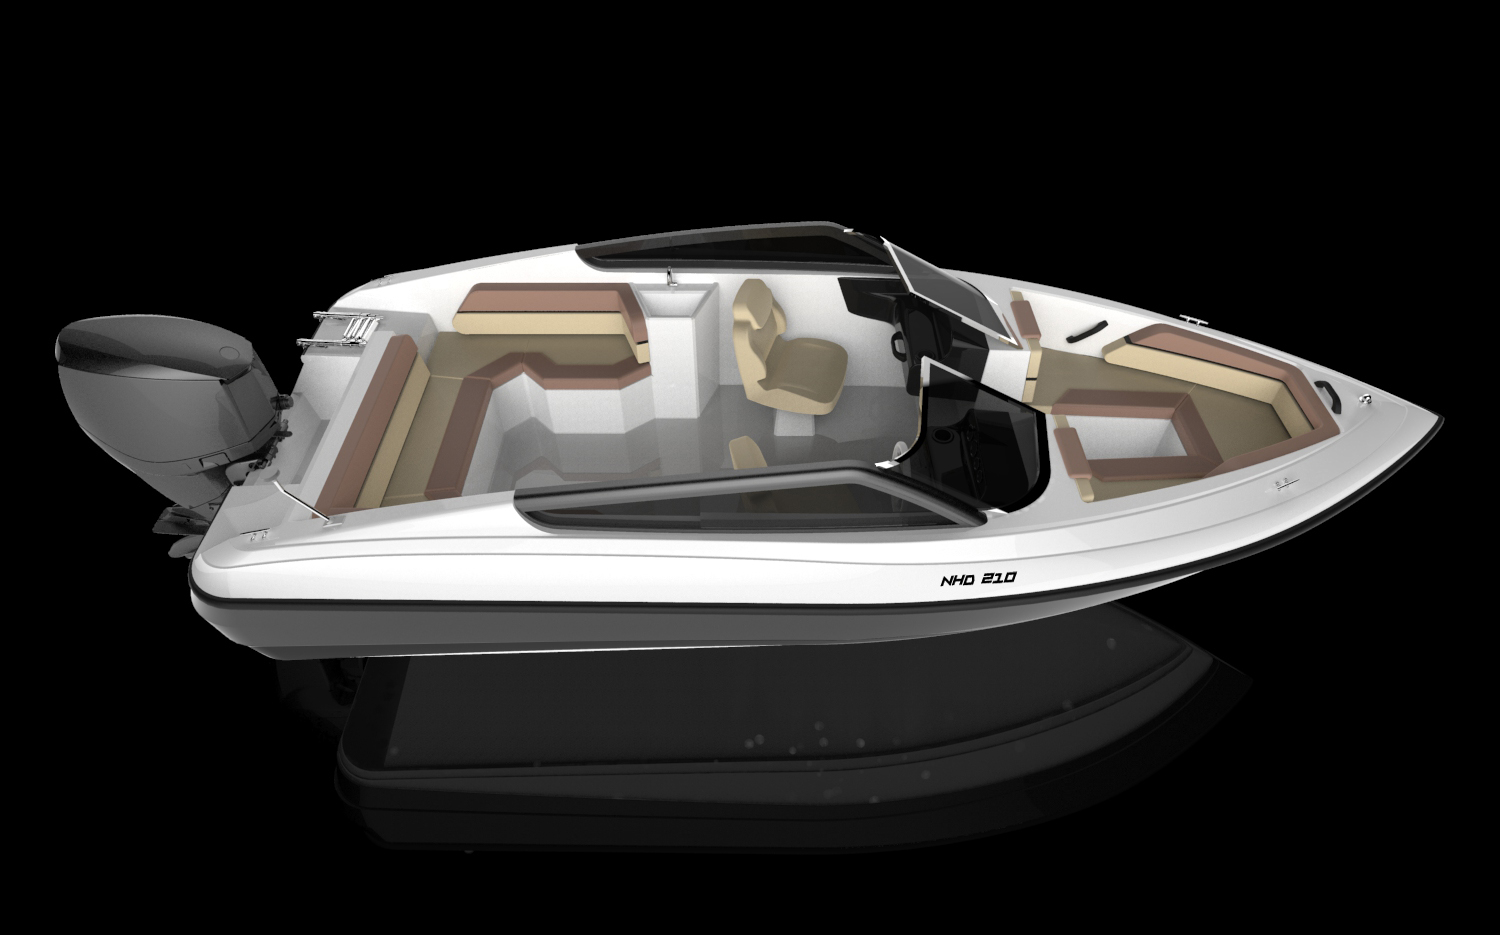 New HD Boats NHD 210